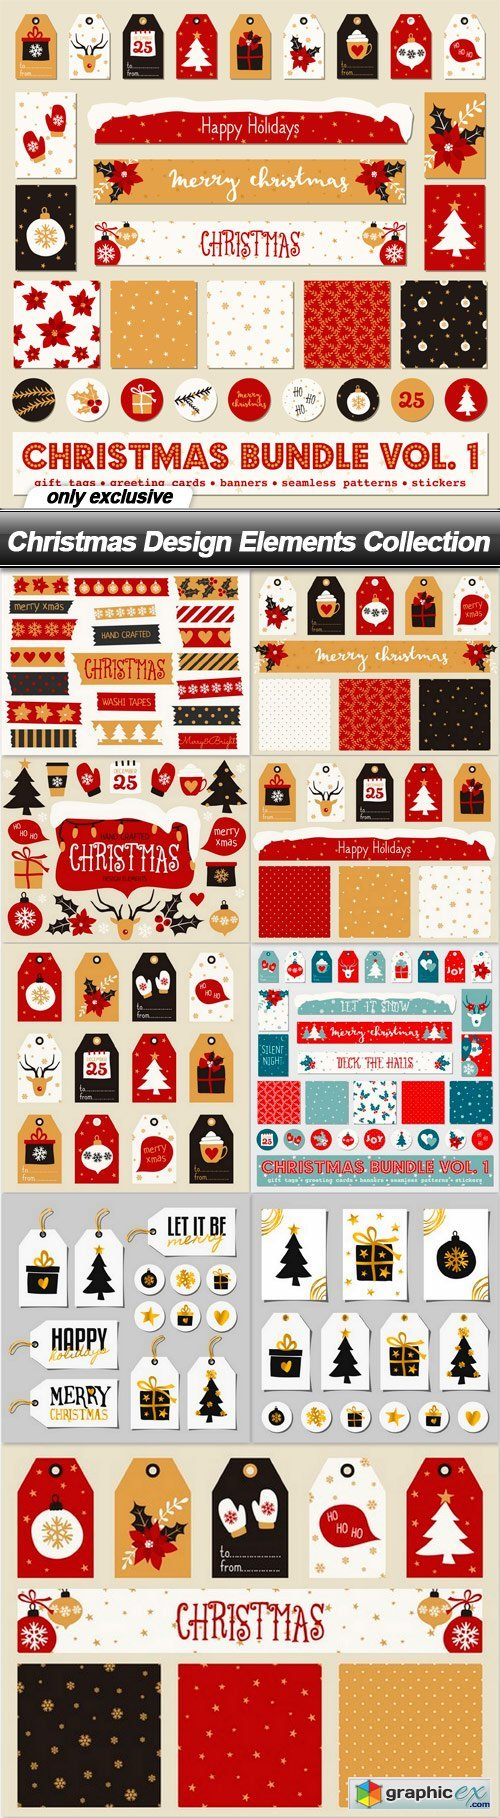 Christmas Design Elements Collection - 10 EPS